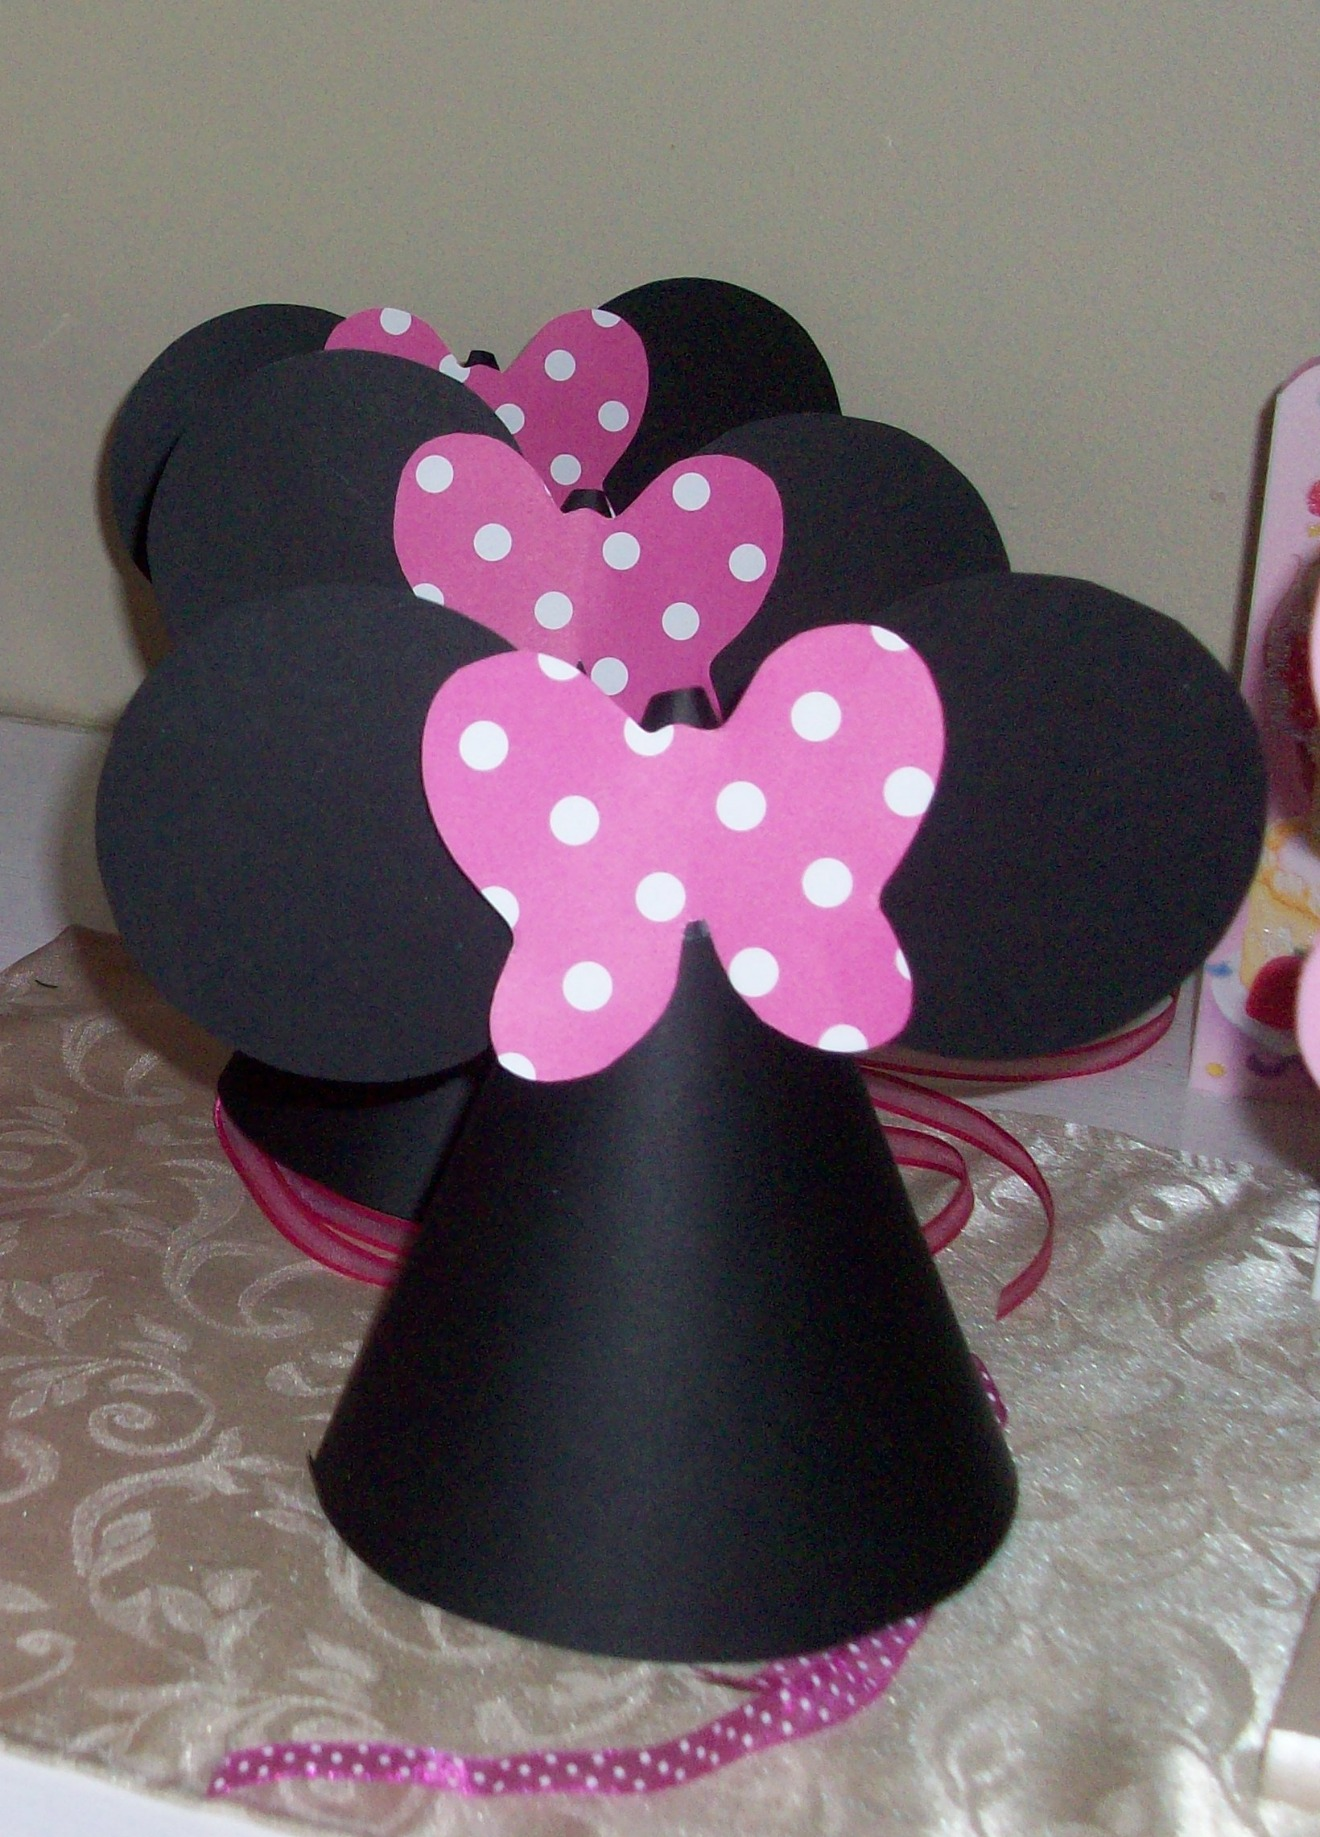 Diy Tutorial From A Catch My Party Member How To Make Minnie Mouse Party Hats Catch My Party